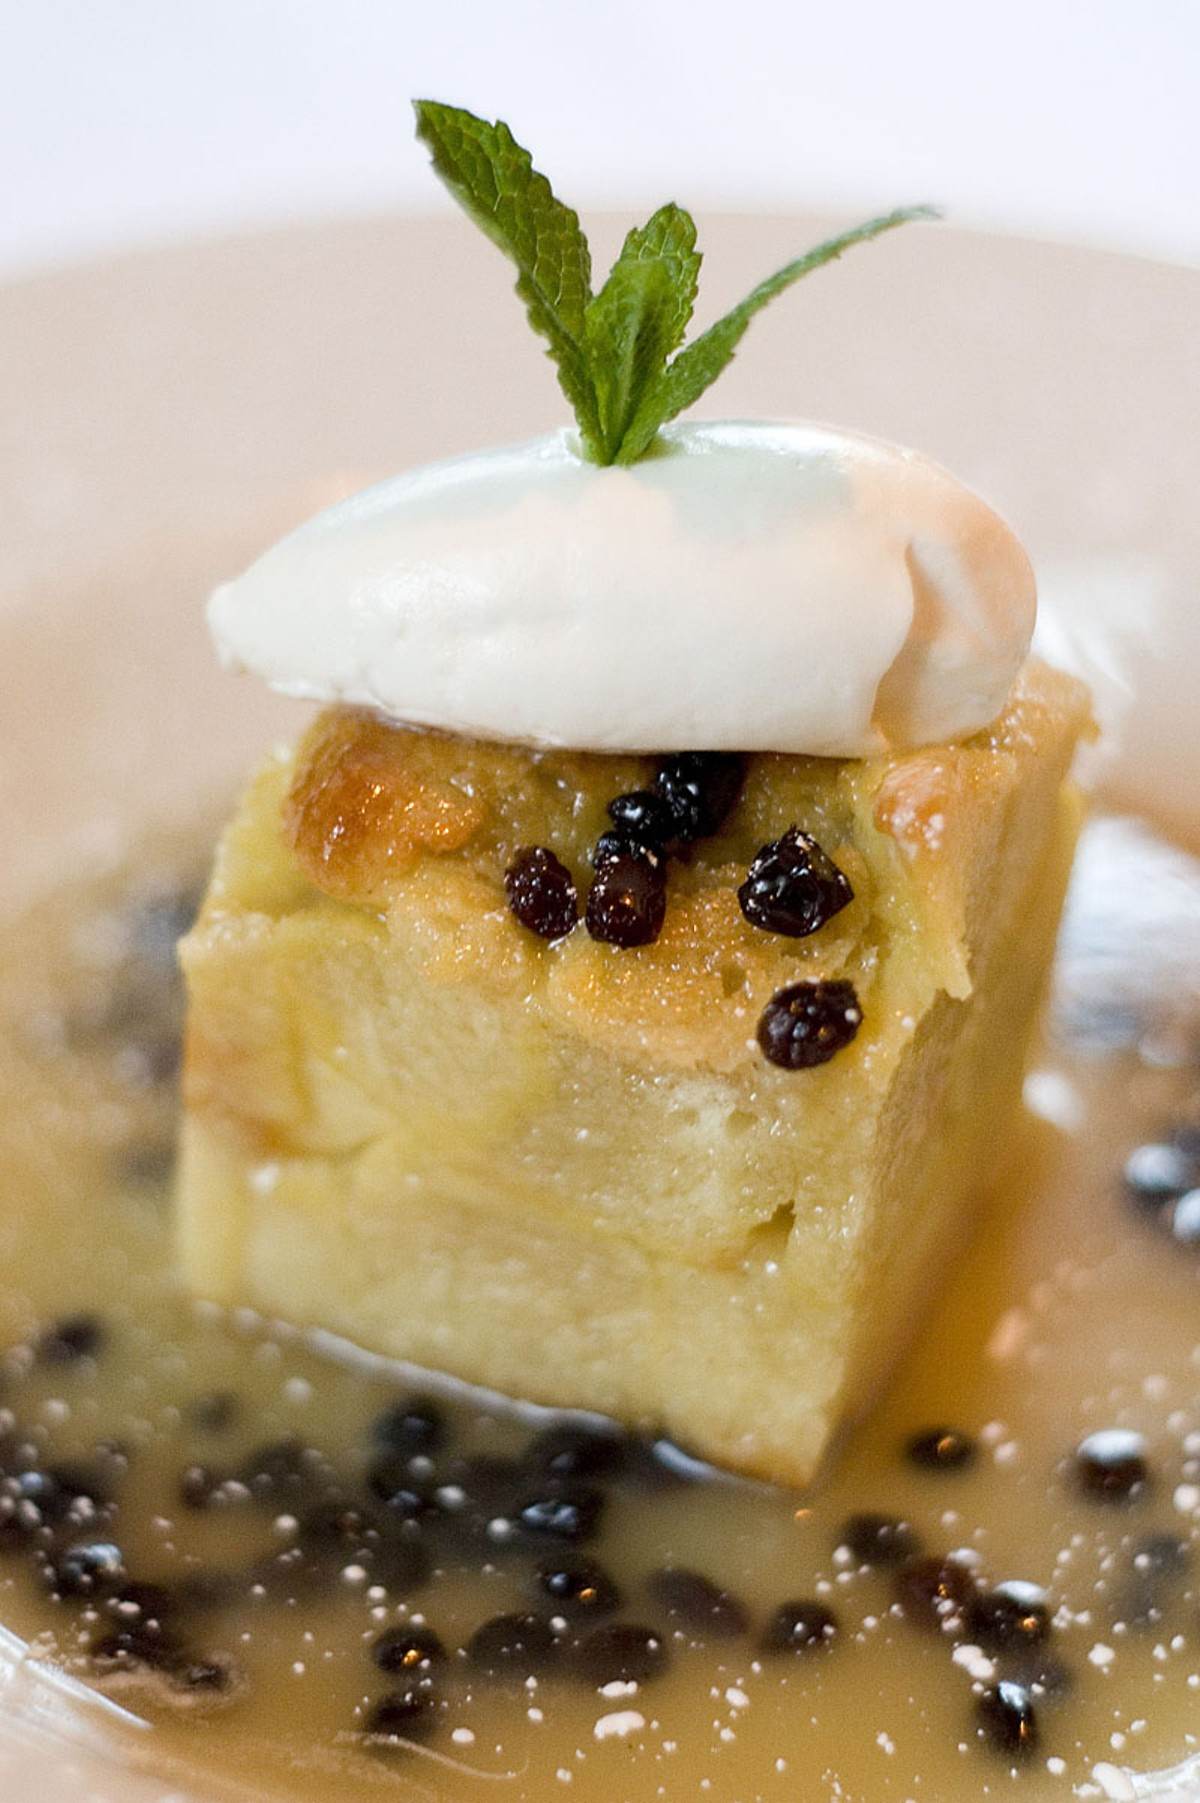 Behold No. 3: Harvest's bread pudding.